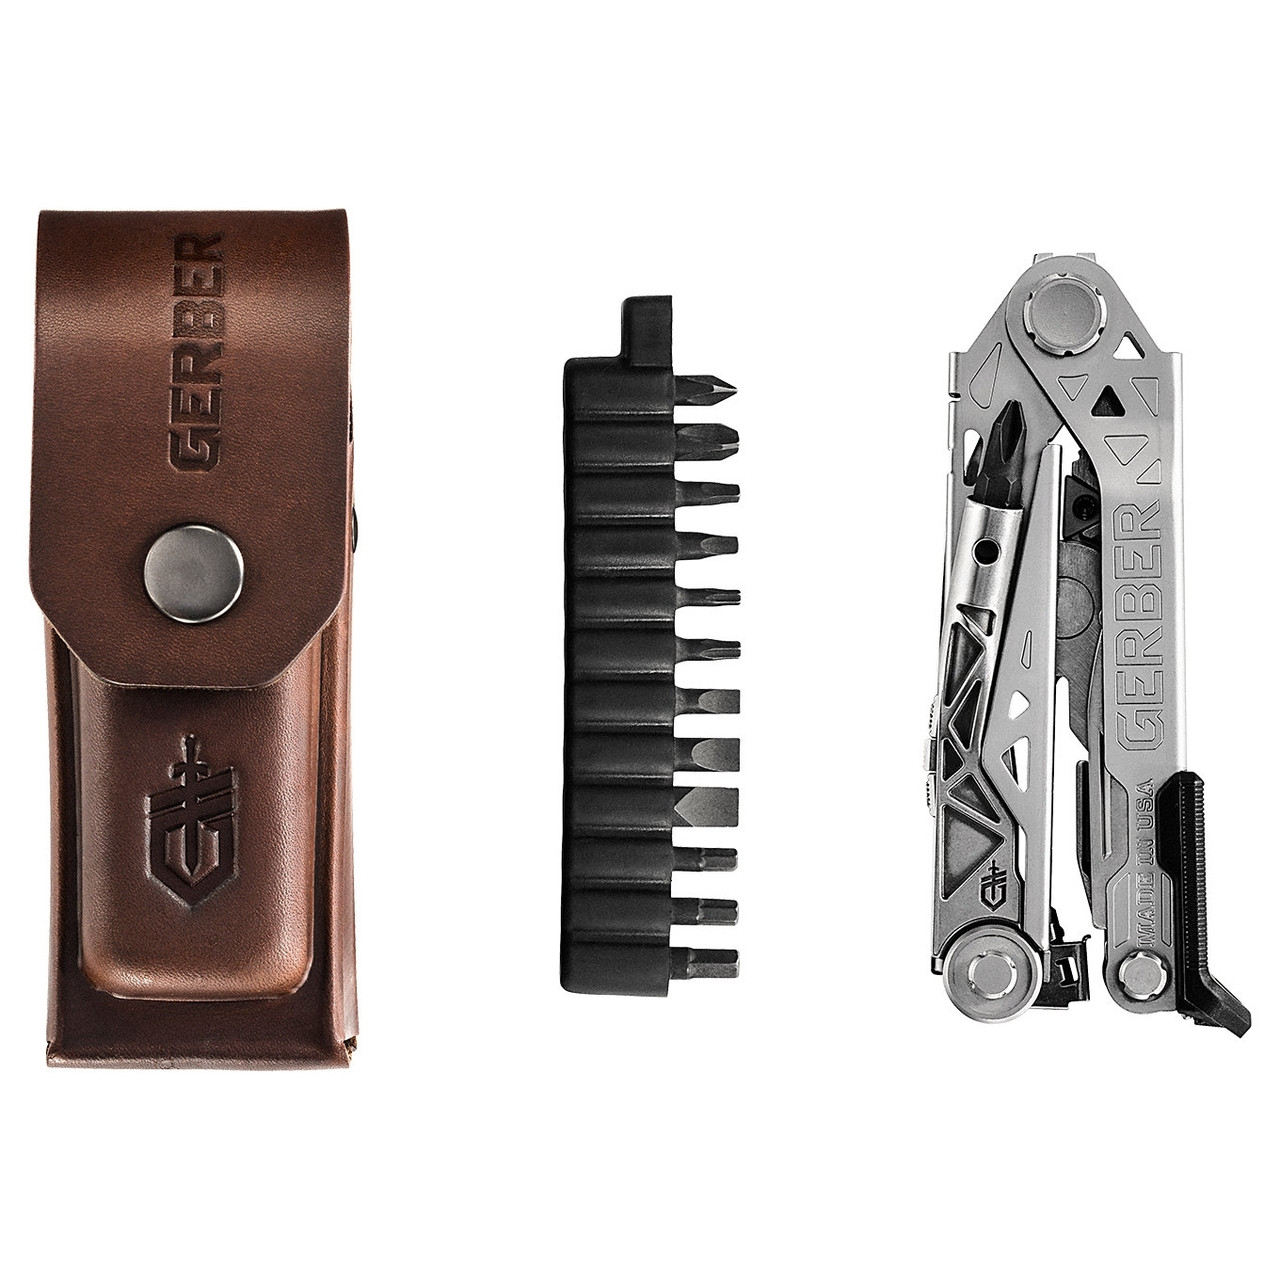 Gerber Center-Drive Plus Multi-Tool, Stainless Finish SHEATH VIEW